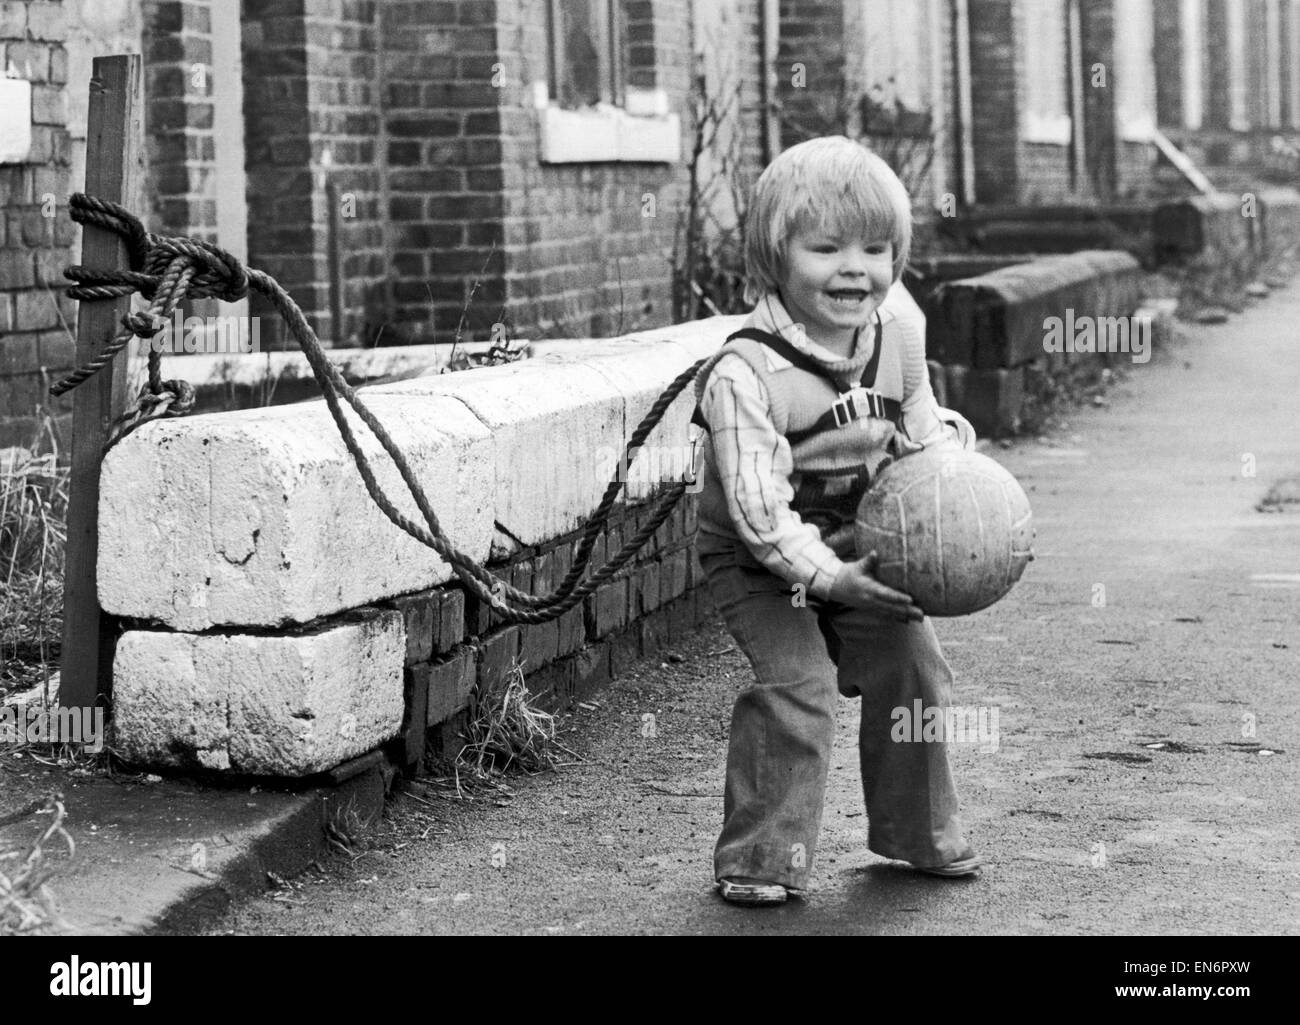 Two year old Jeffrey Metcalfe who has nearly been run over several times is now tied up by his mum to prevent him - Stock Image